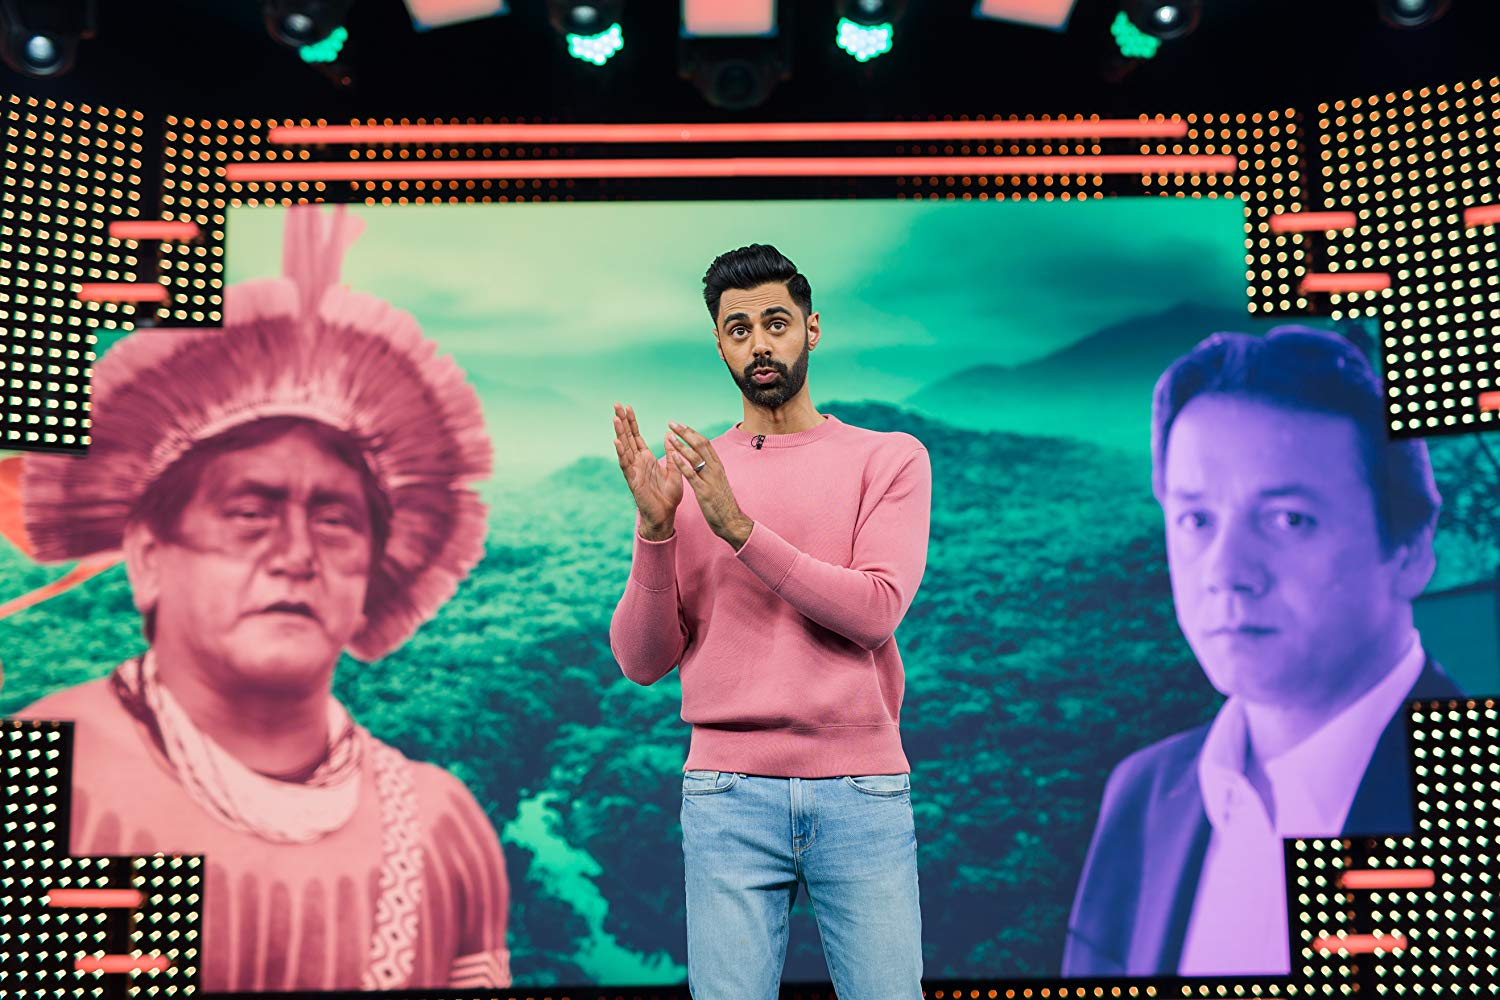 Patriot Act with Hasan Minhaj - Season 3